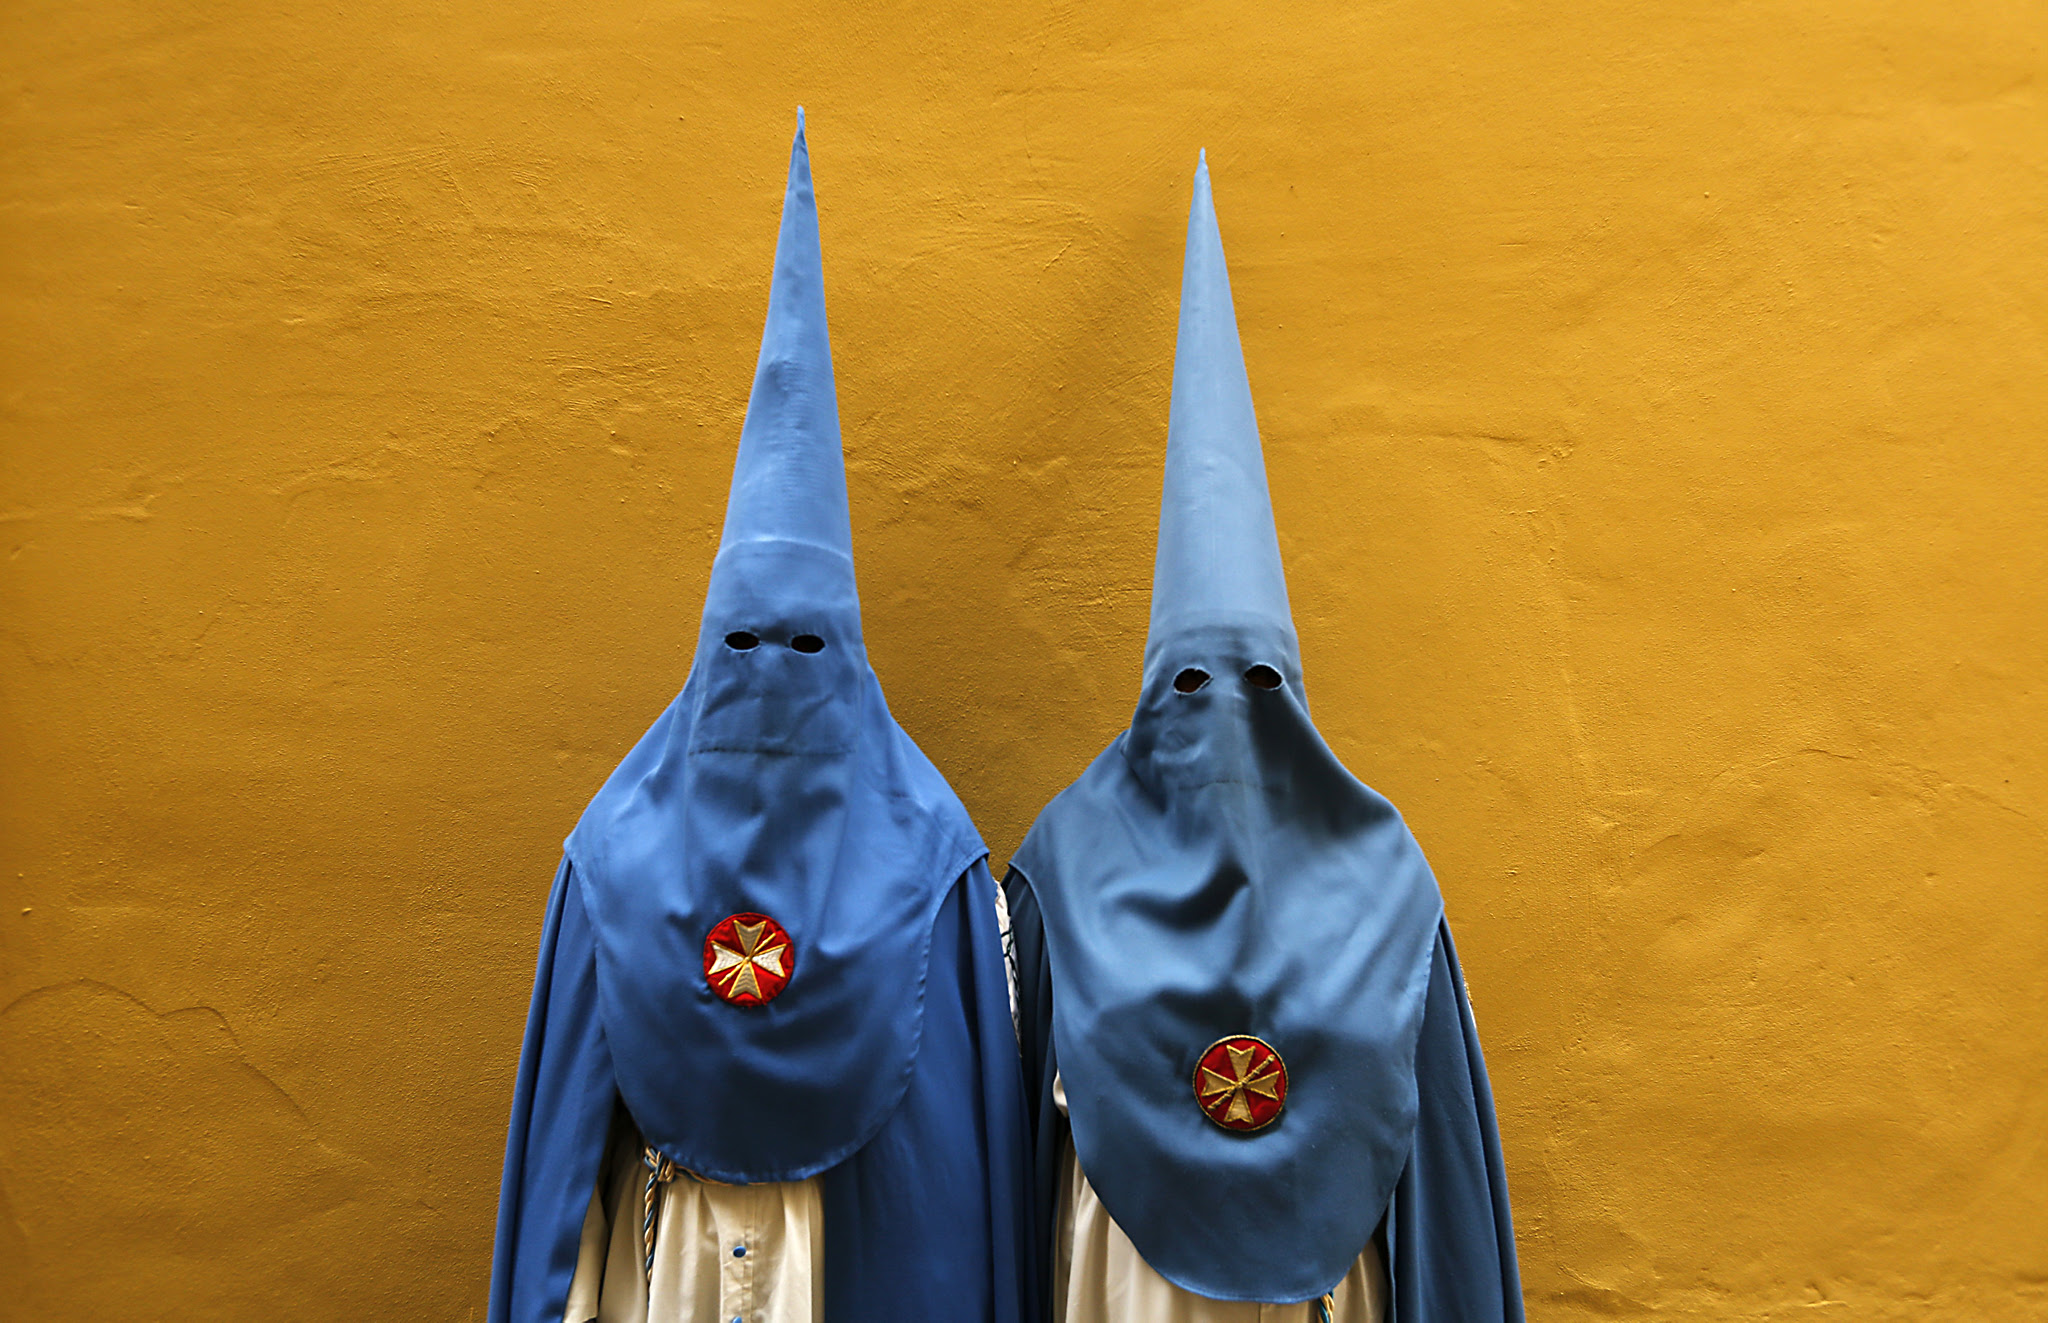 Penitents of San Esteban brotherhood pose during Holy Week in the Andalusian capital of Seville, southern Spain...Penitents of San Esteban brotherhood pose before taking part in a procession during Holy Week in the Andalusian capital of Seville, southern Spain March 22, 2016. REUTERS/Marcelo del Pozo